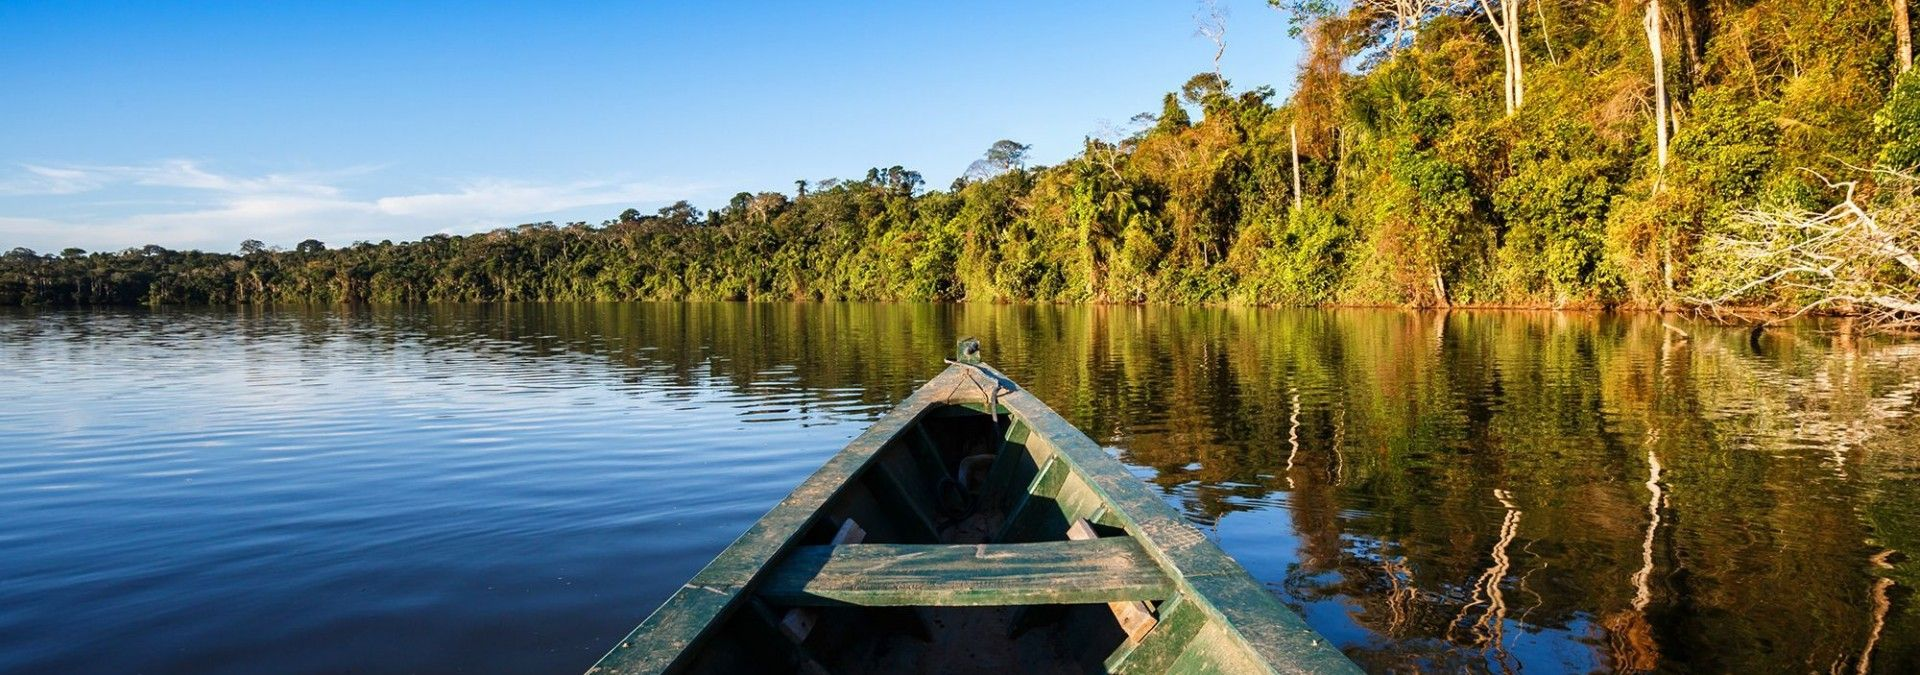 Amazon Rainforest by boat